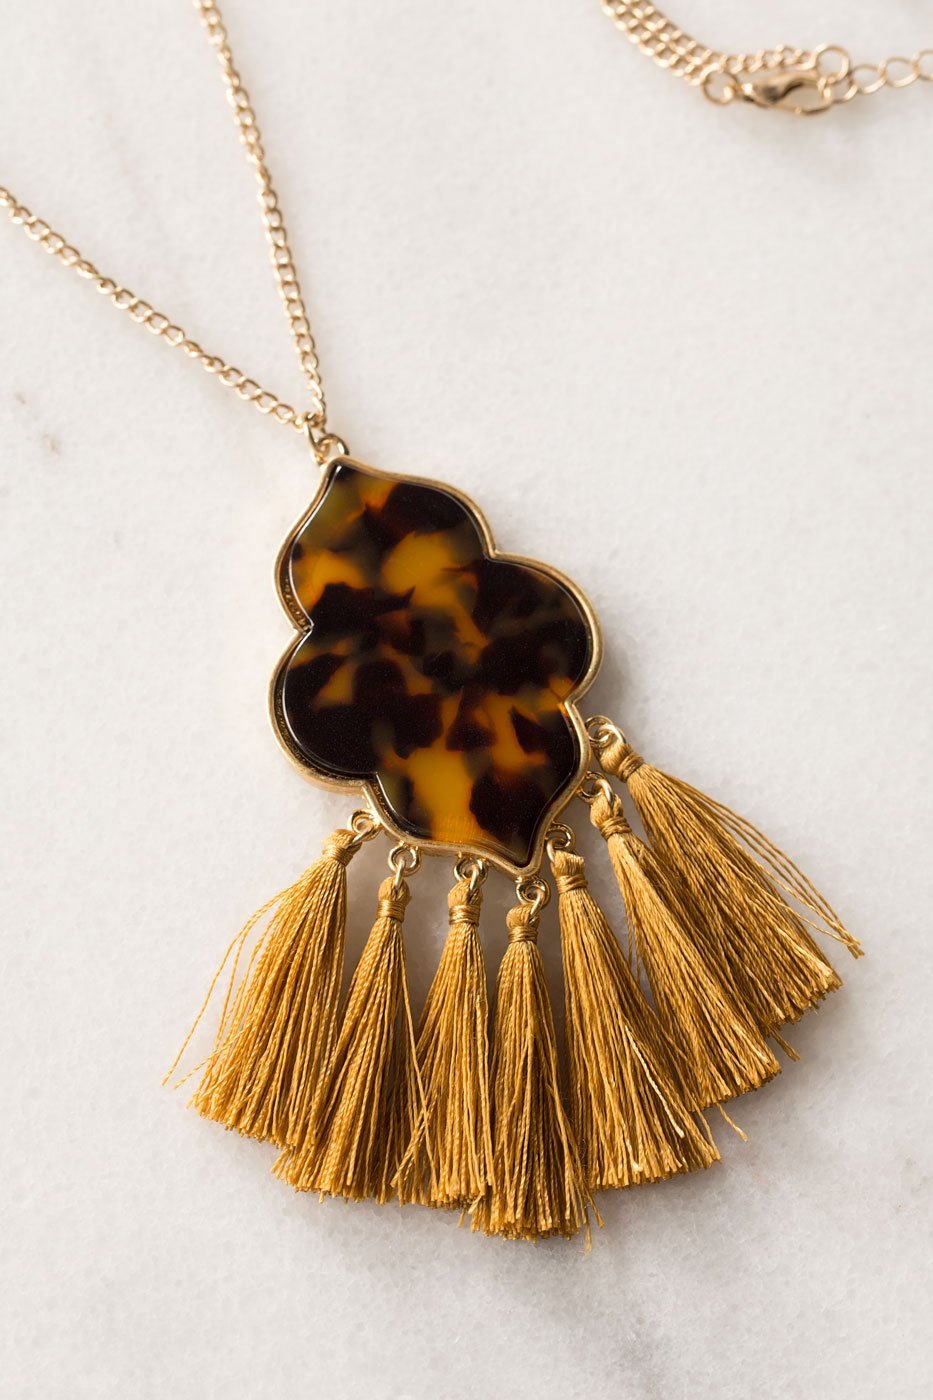 Jewelry - Jewel Tassel Necklace - Mustard